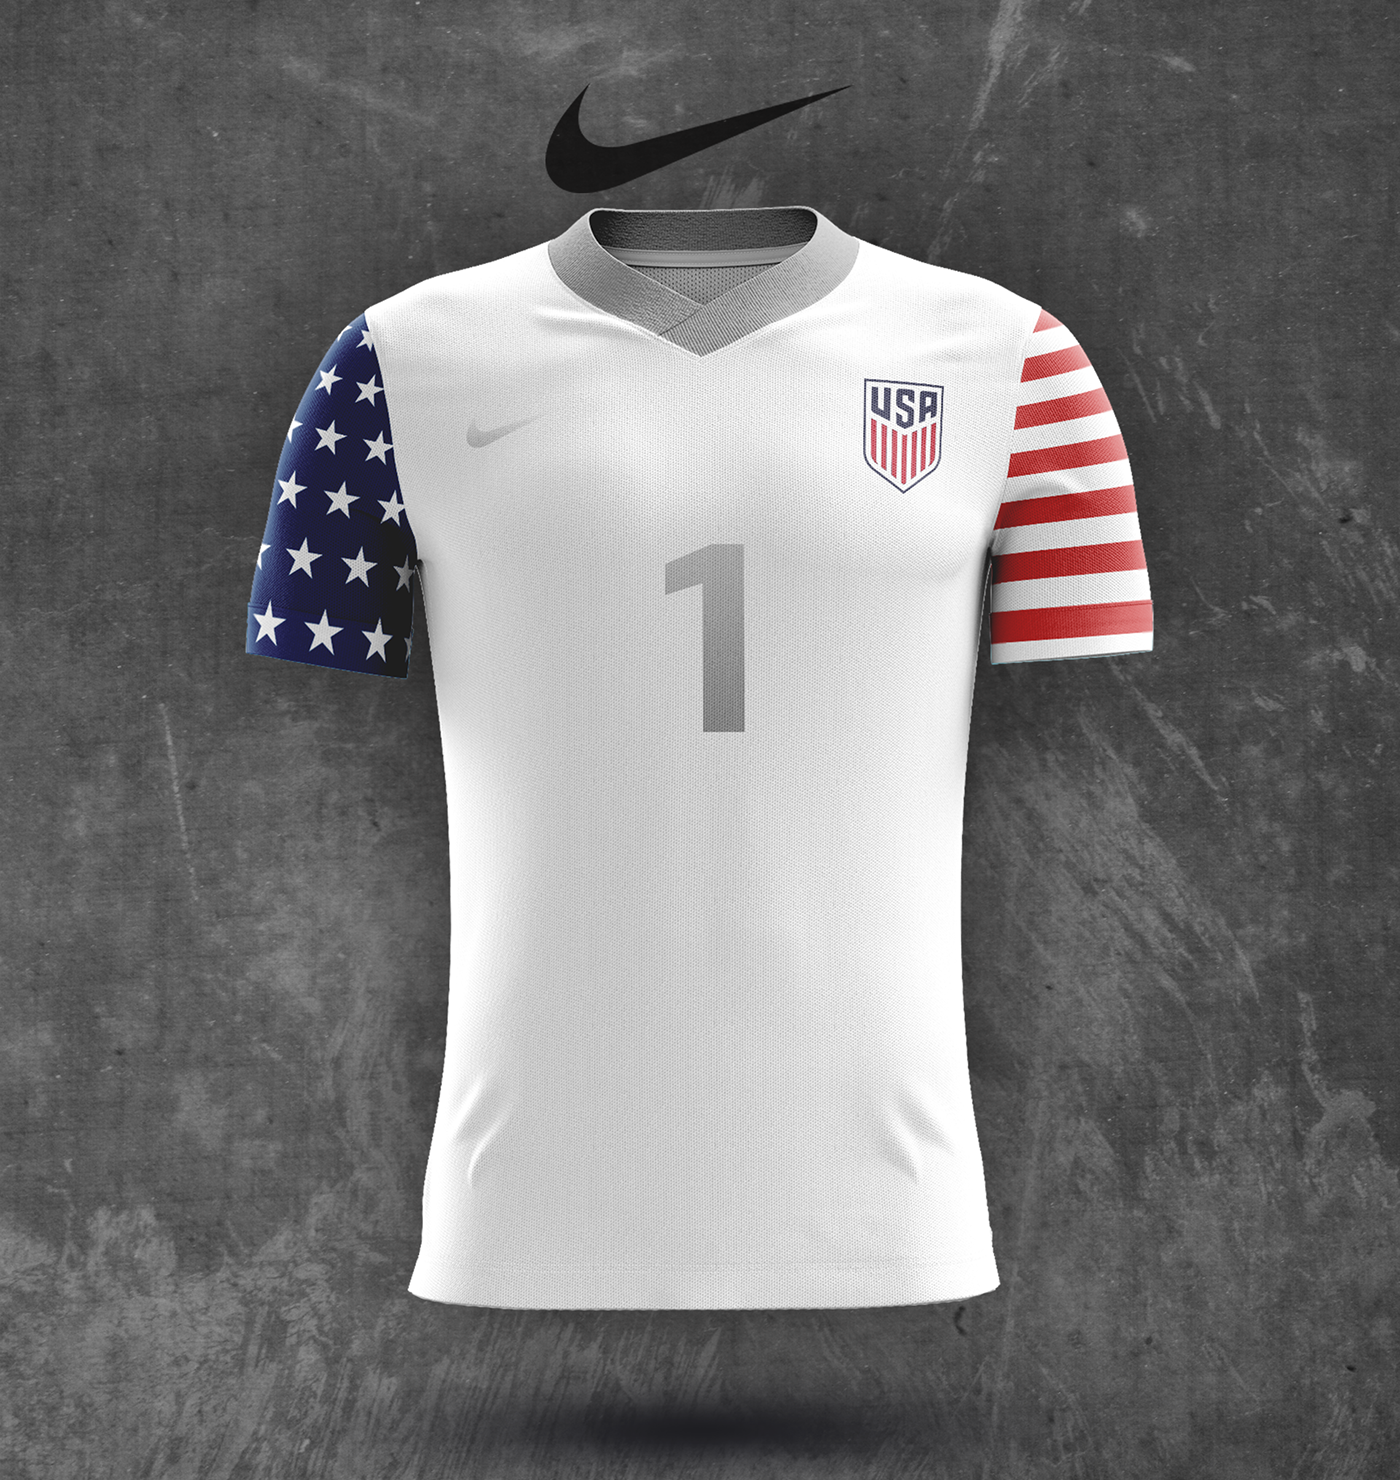 design jersey soccer nike concept us men s national team